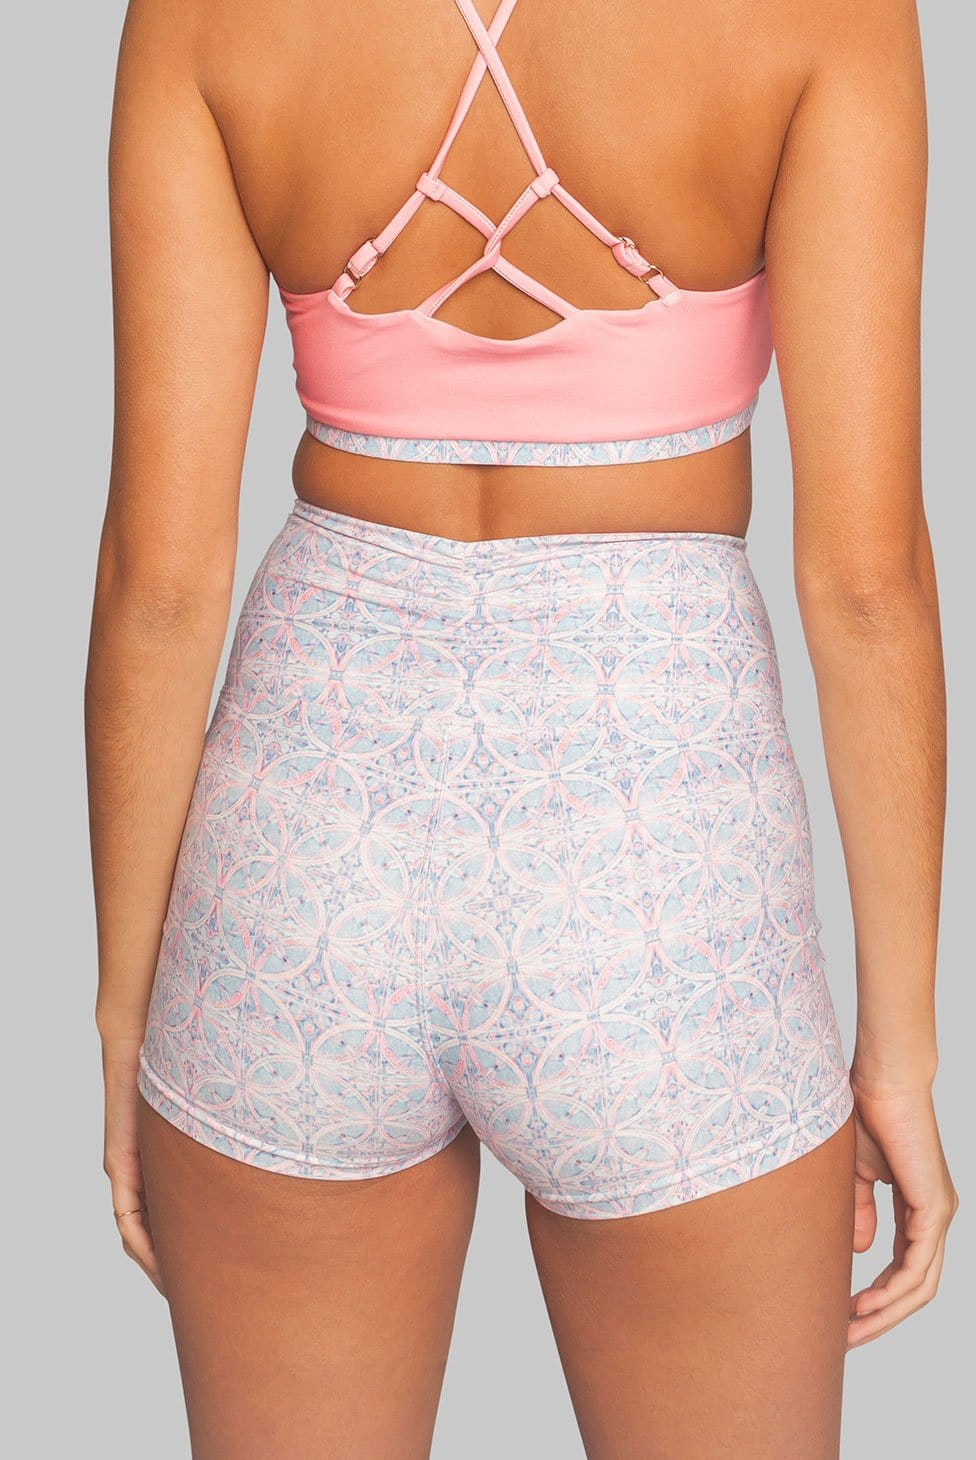 Wolven Sustainable Activewear High-waisted Short Pink Yoga mandala print